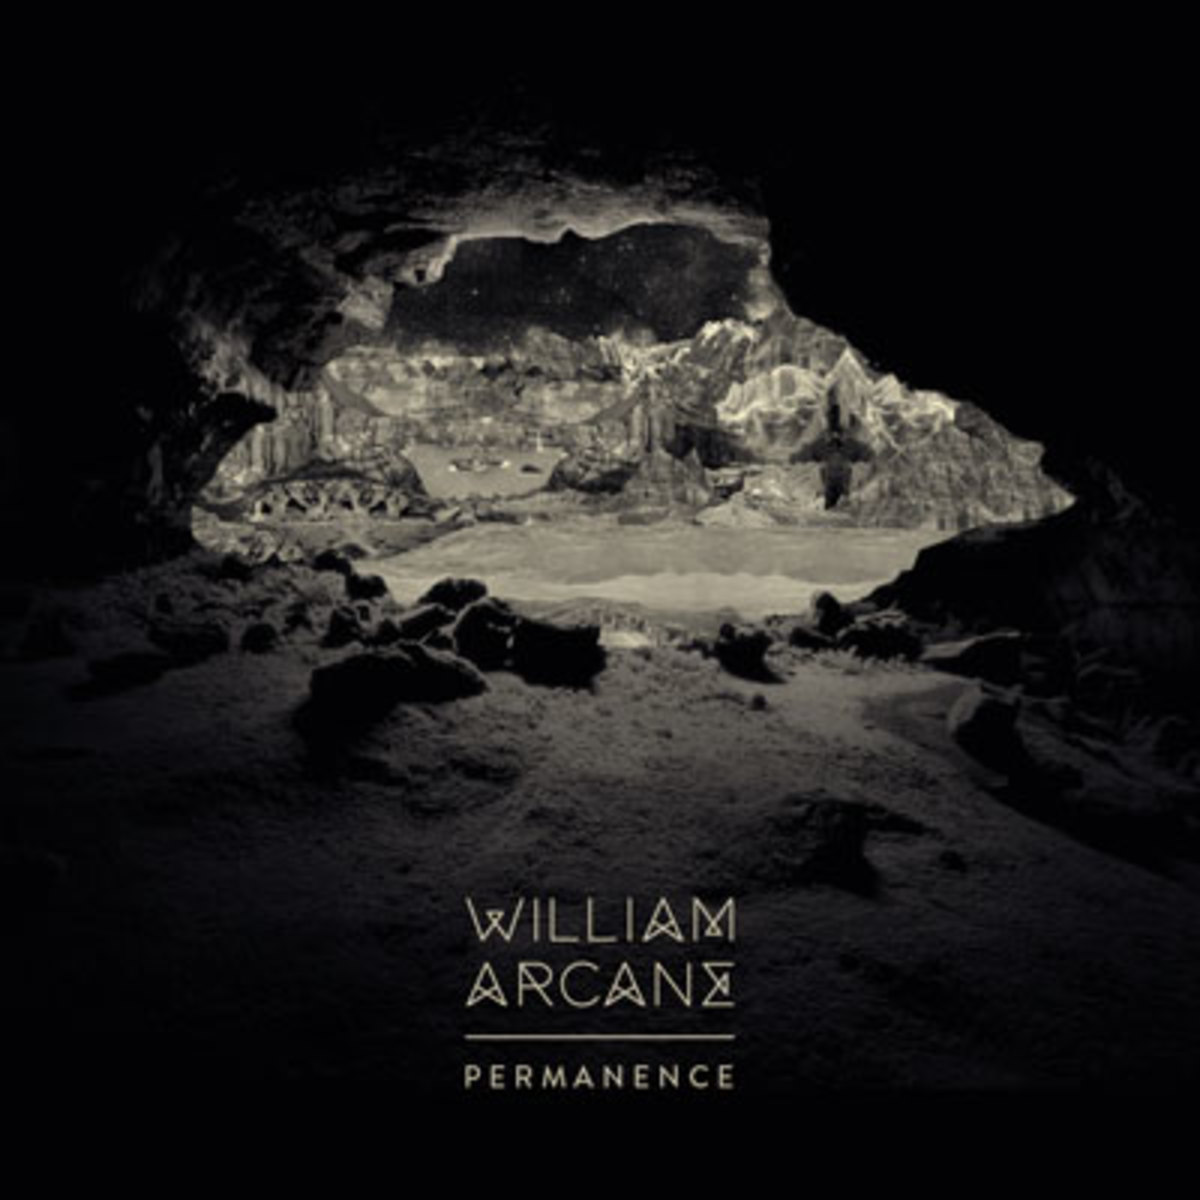 williamarcane-permanence.jpg